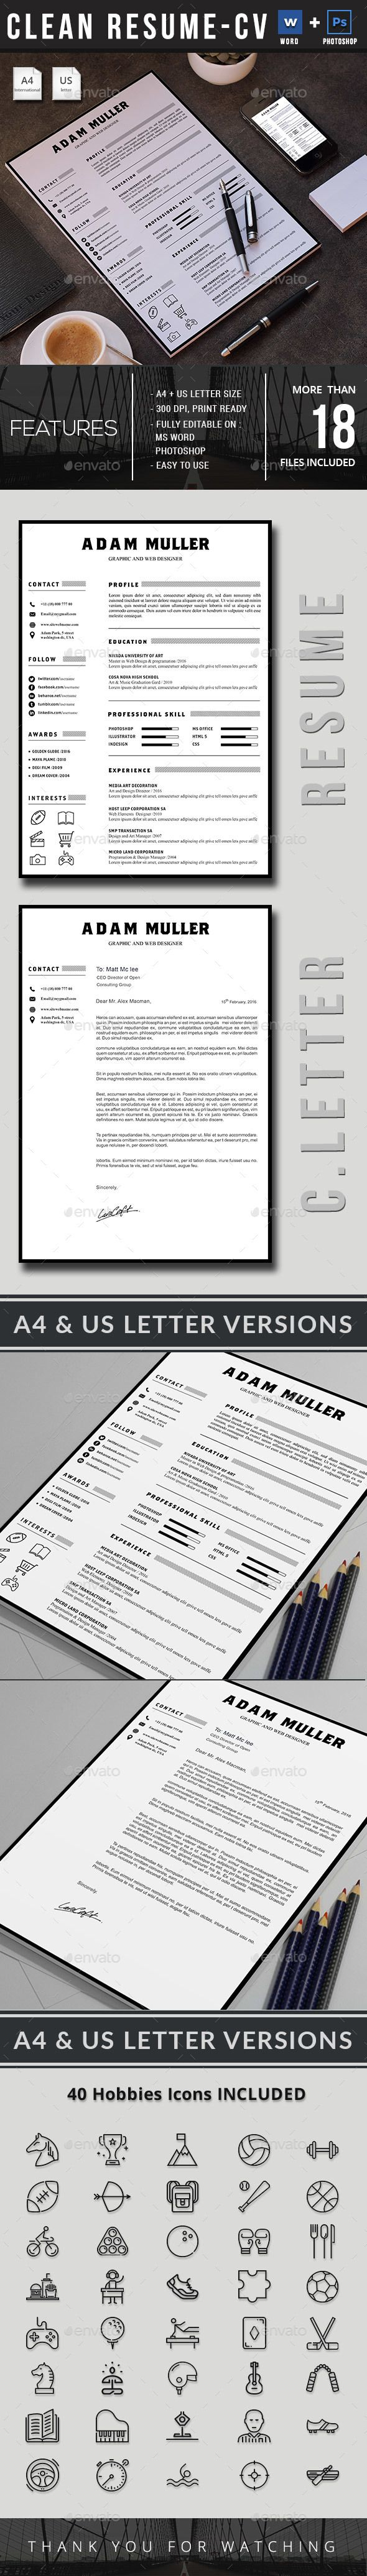 93 best Office images on Pinterest | Computer science, Cheat sheets ...